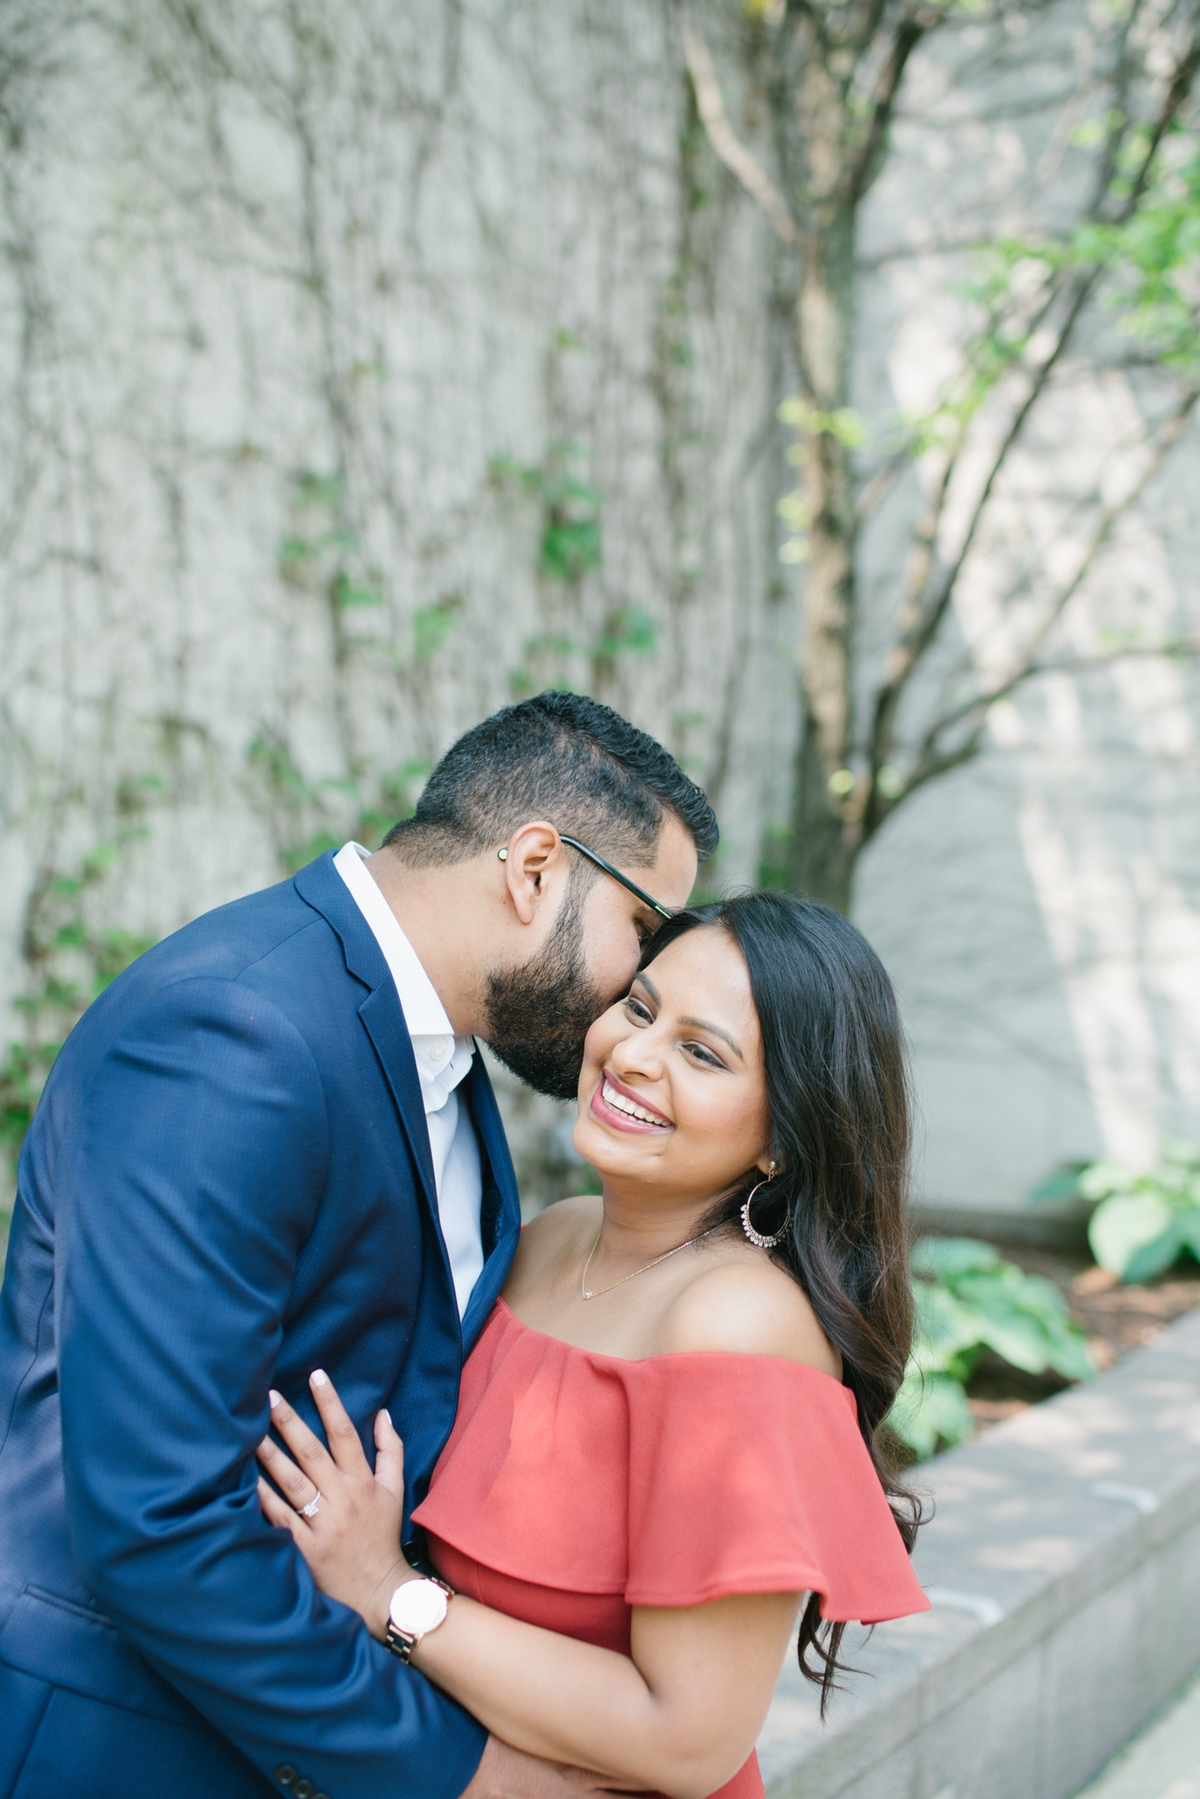 Le Cape Weddings - Sindhura - Chicago Engagement Session_-6.jpg